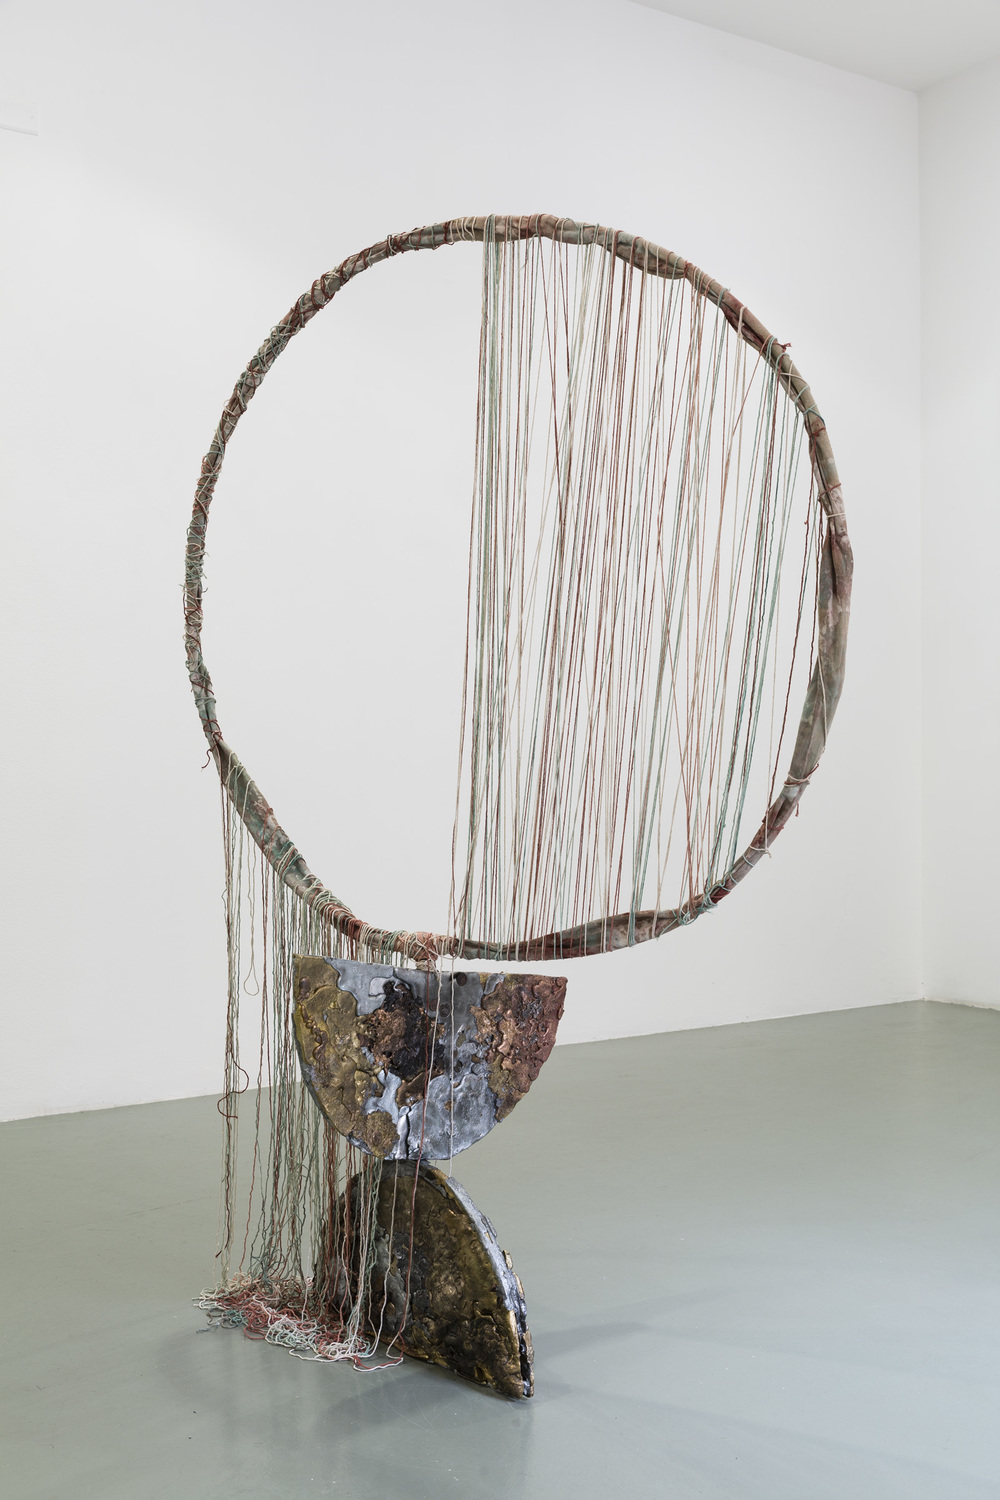 Jory Rabinovitz,  Given (Halved),  2015, melted currency, unsold sculptures, Verdigris, iron oxide, zinc white, 48 x 48 x 72 in